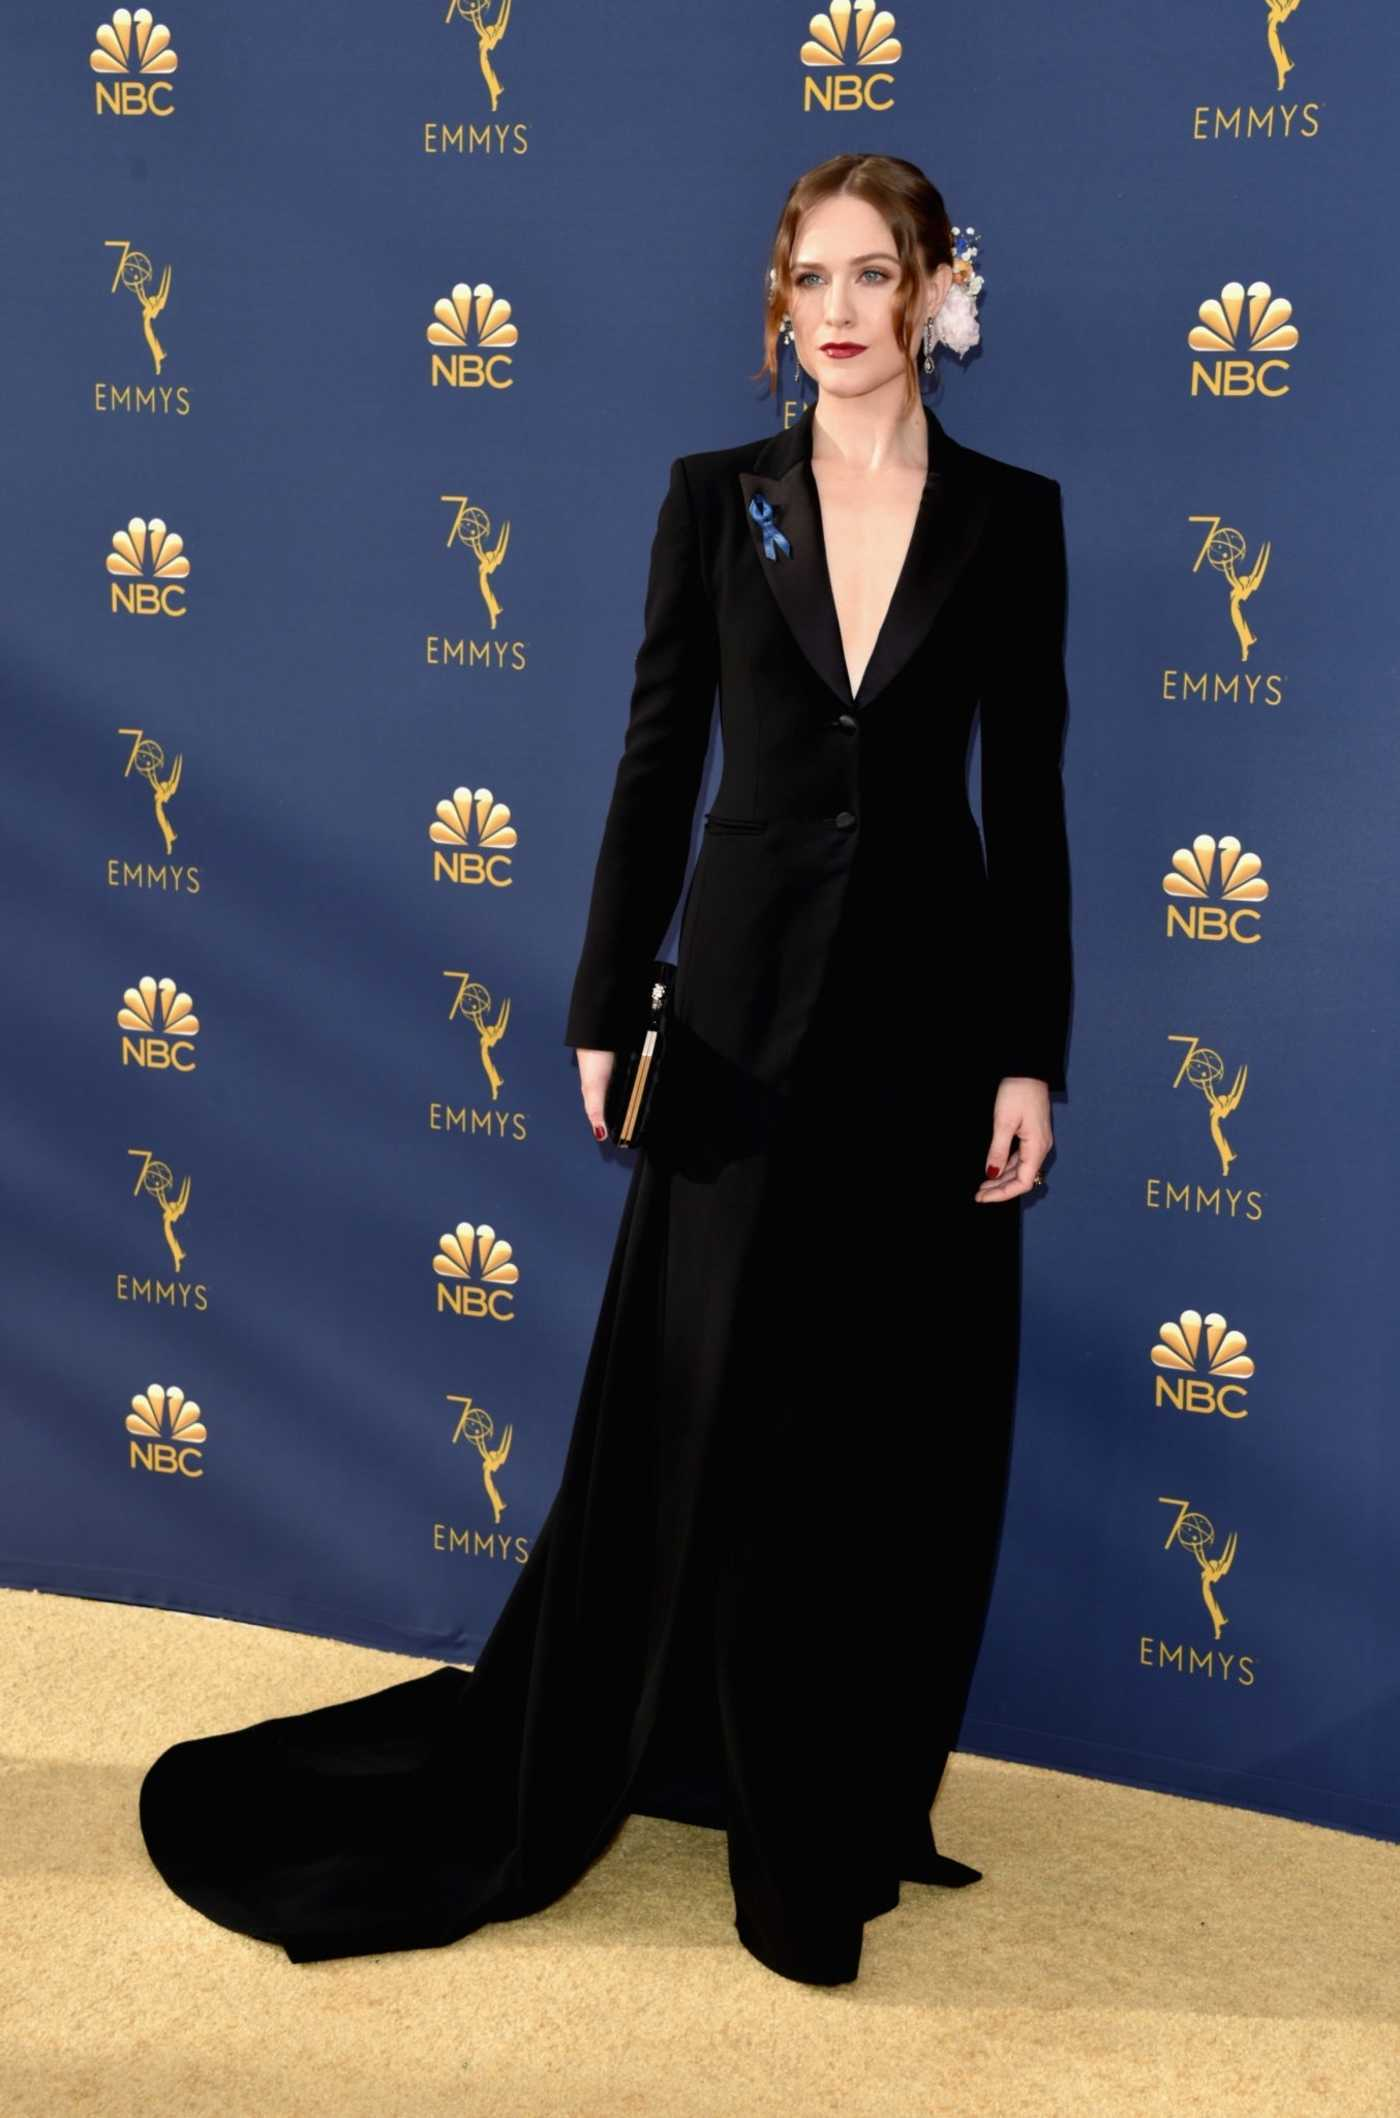 Evan Rachel Wood at the 70th Primetime Emmy Awards in LA 09/17/2018